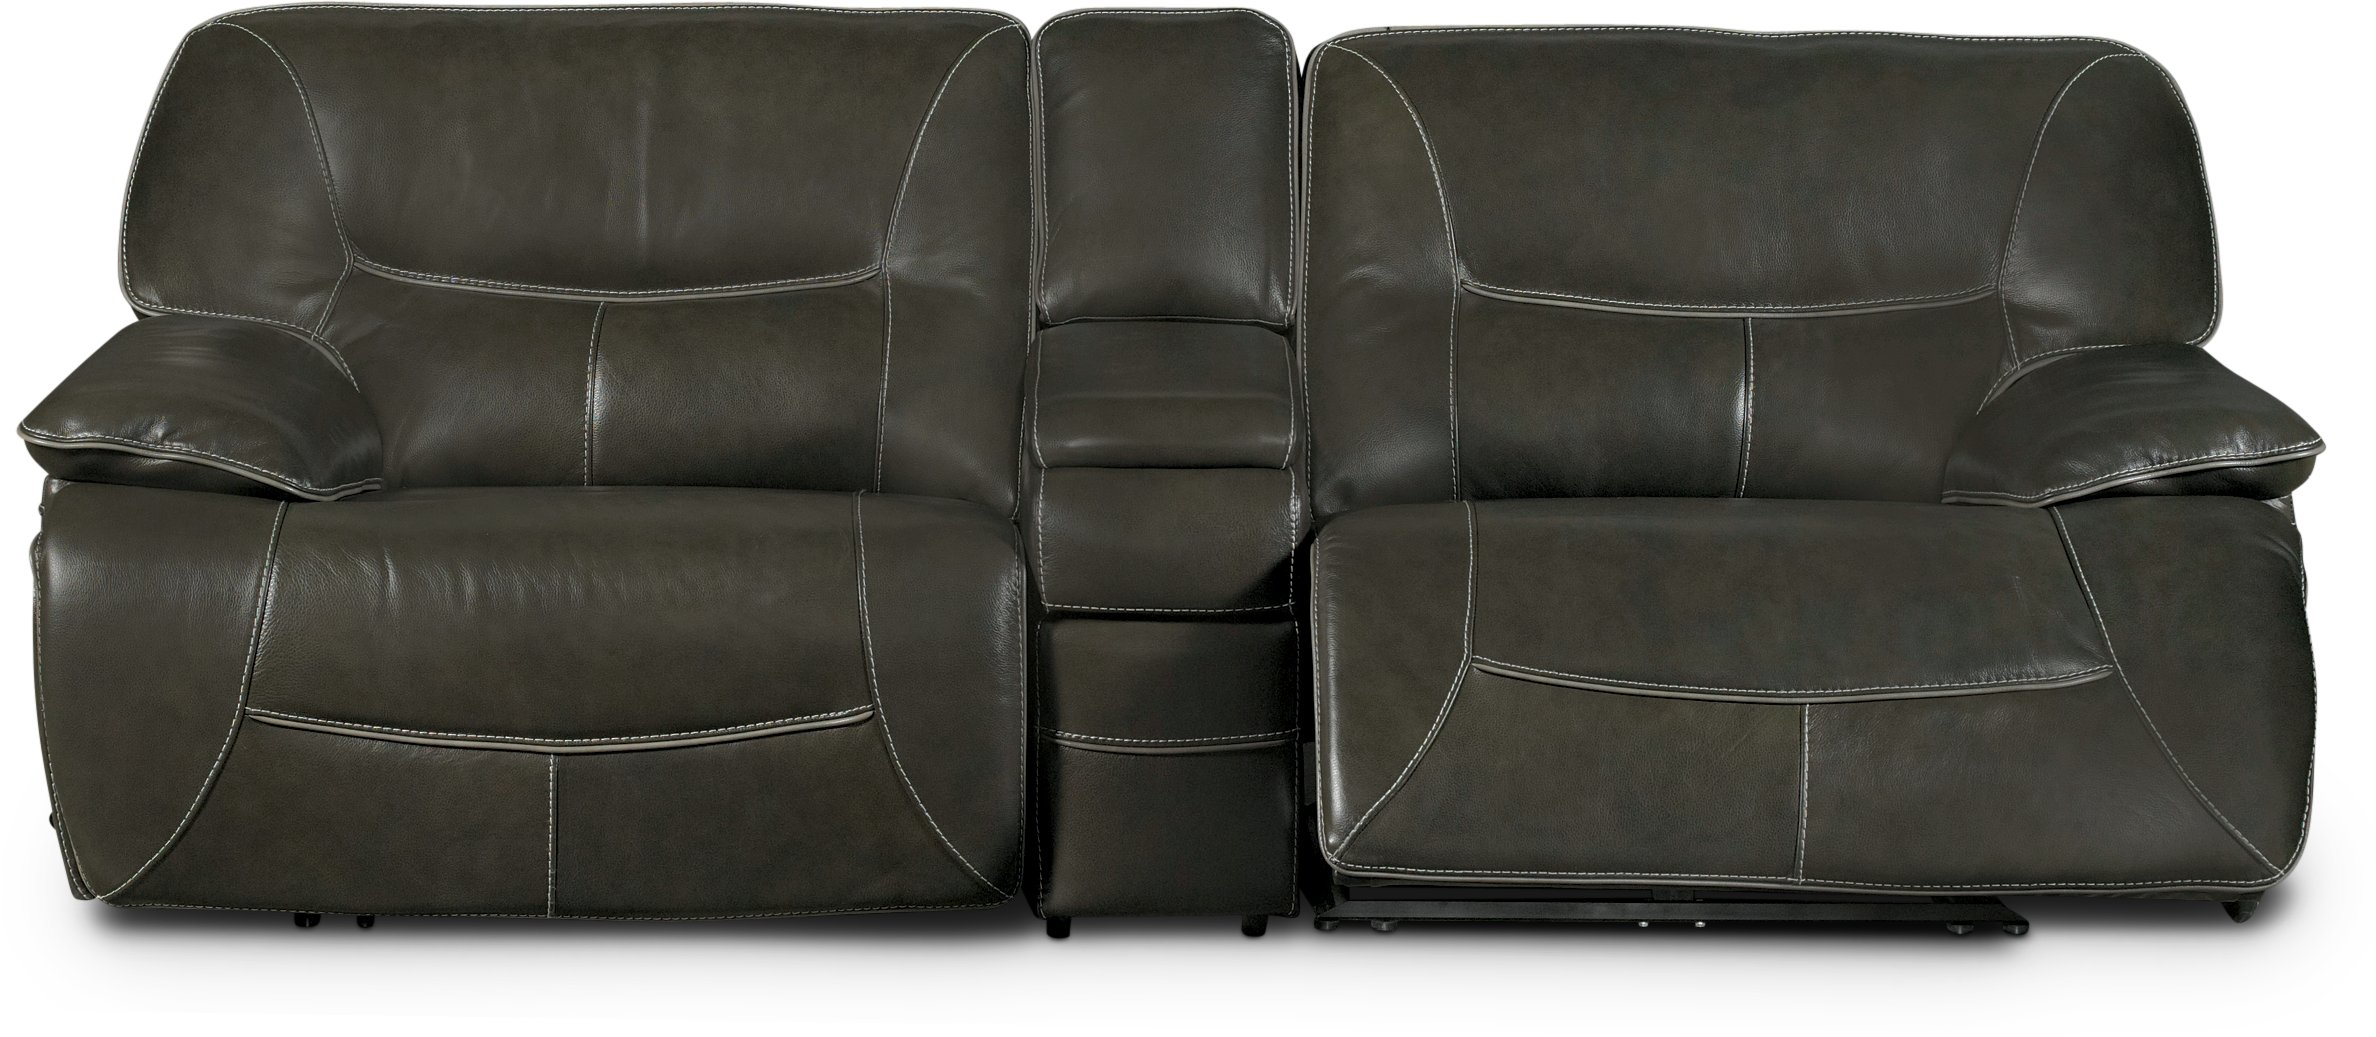 Ghost gray leather match 8 piece power reclining sectional for 8 piece leather sectional sofa